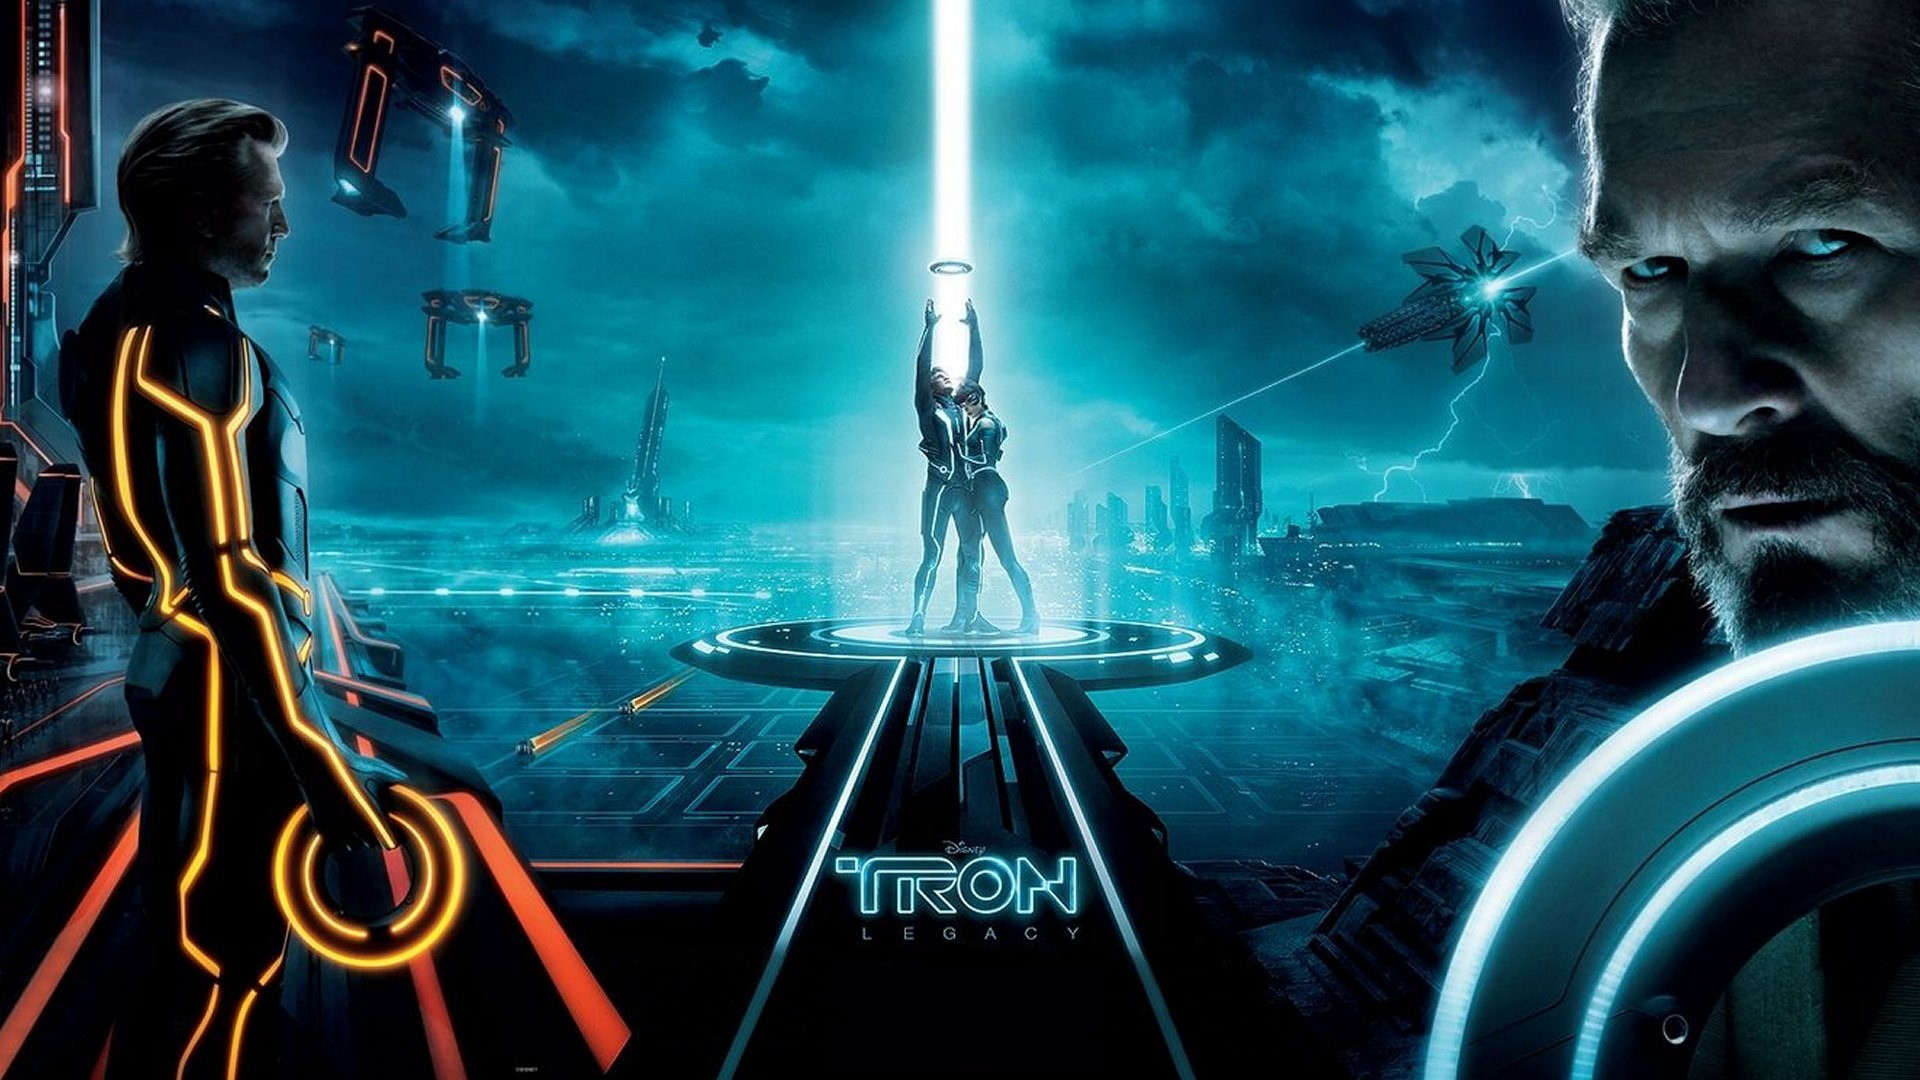 Free Download Disney Tron Legacy 1920x1080 Wallpaper Fond